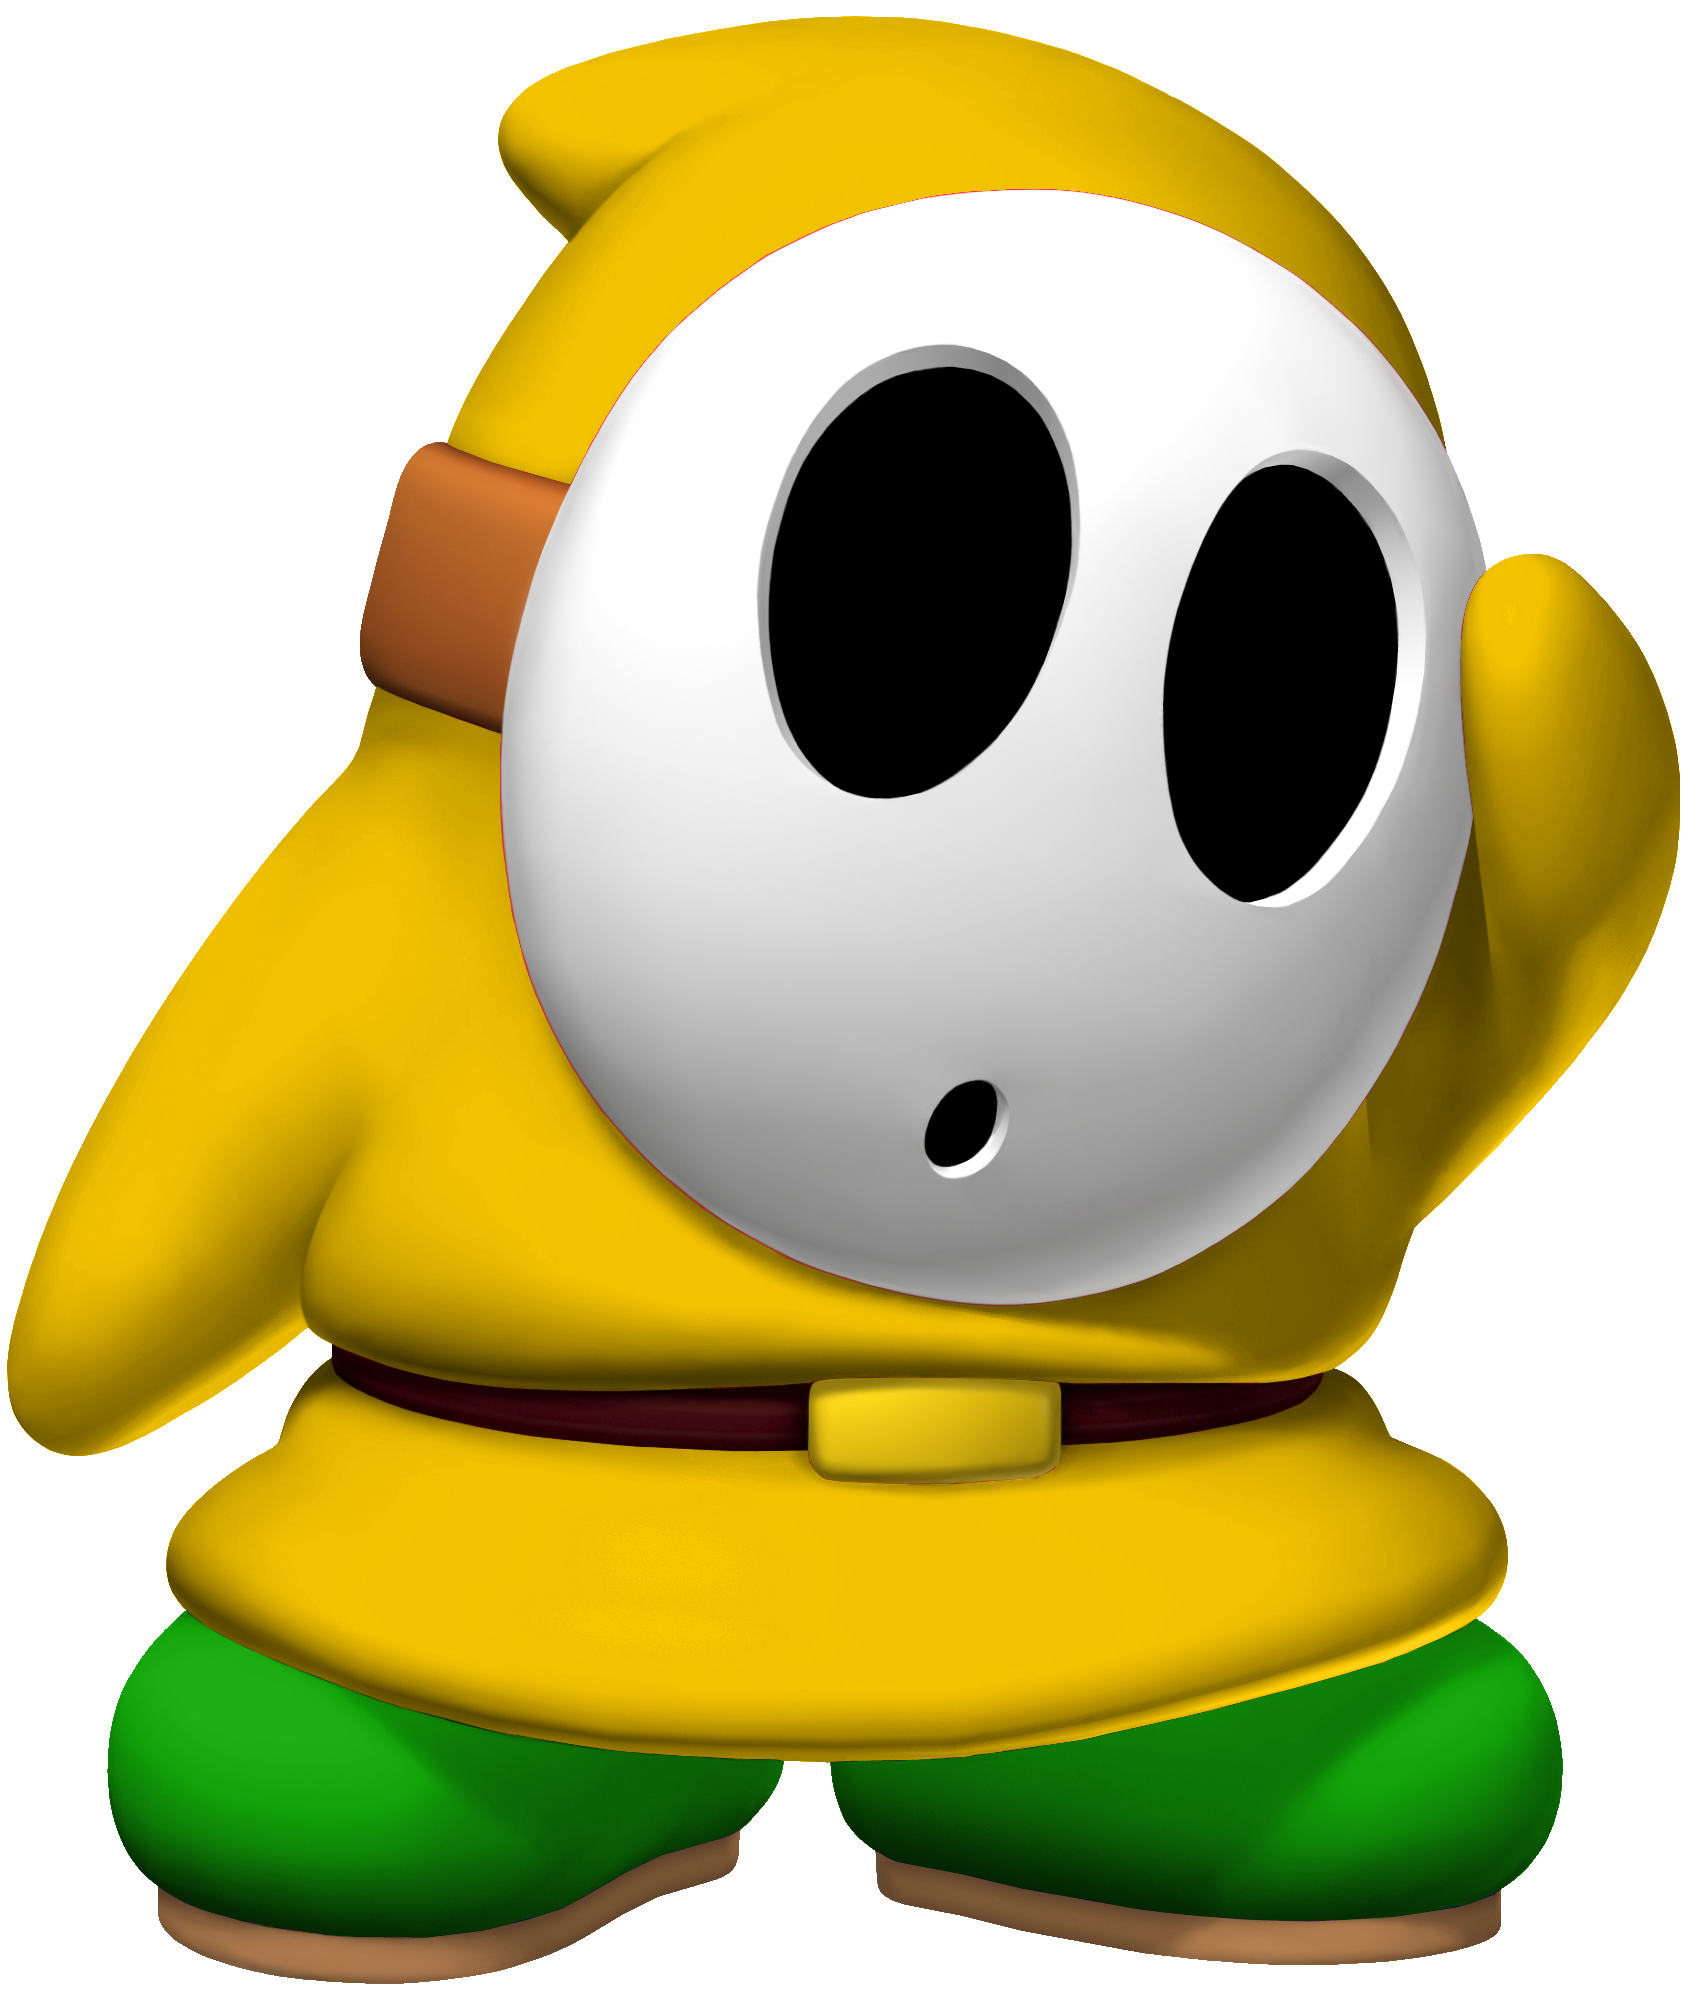 Shy clipart shy guy. Image acl mk yellow